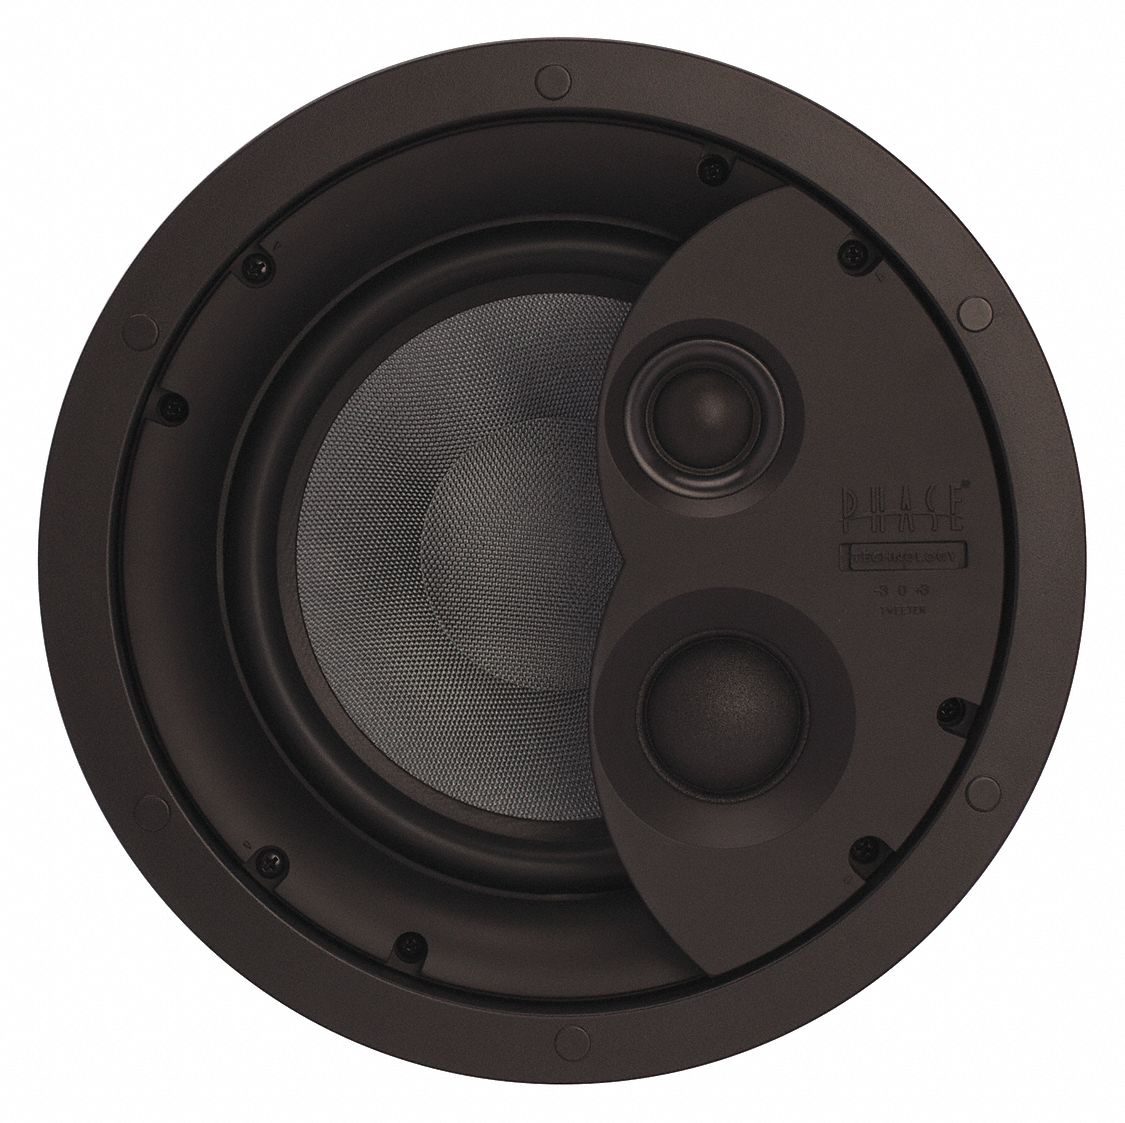 Speaker,  200 Watt (RMS),  8 ohm Impedance (Ohms),  7 Overall Height (In.),  11 Overall Length (In.)